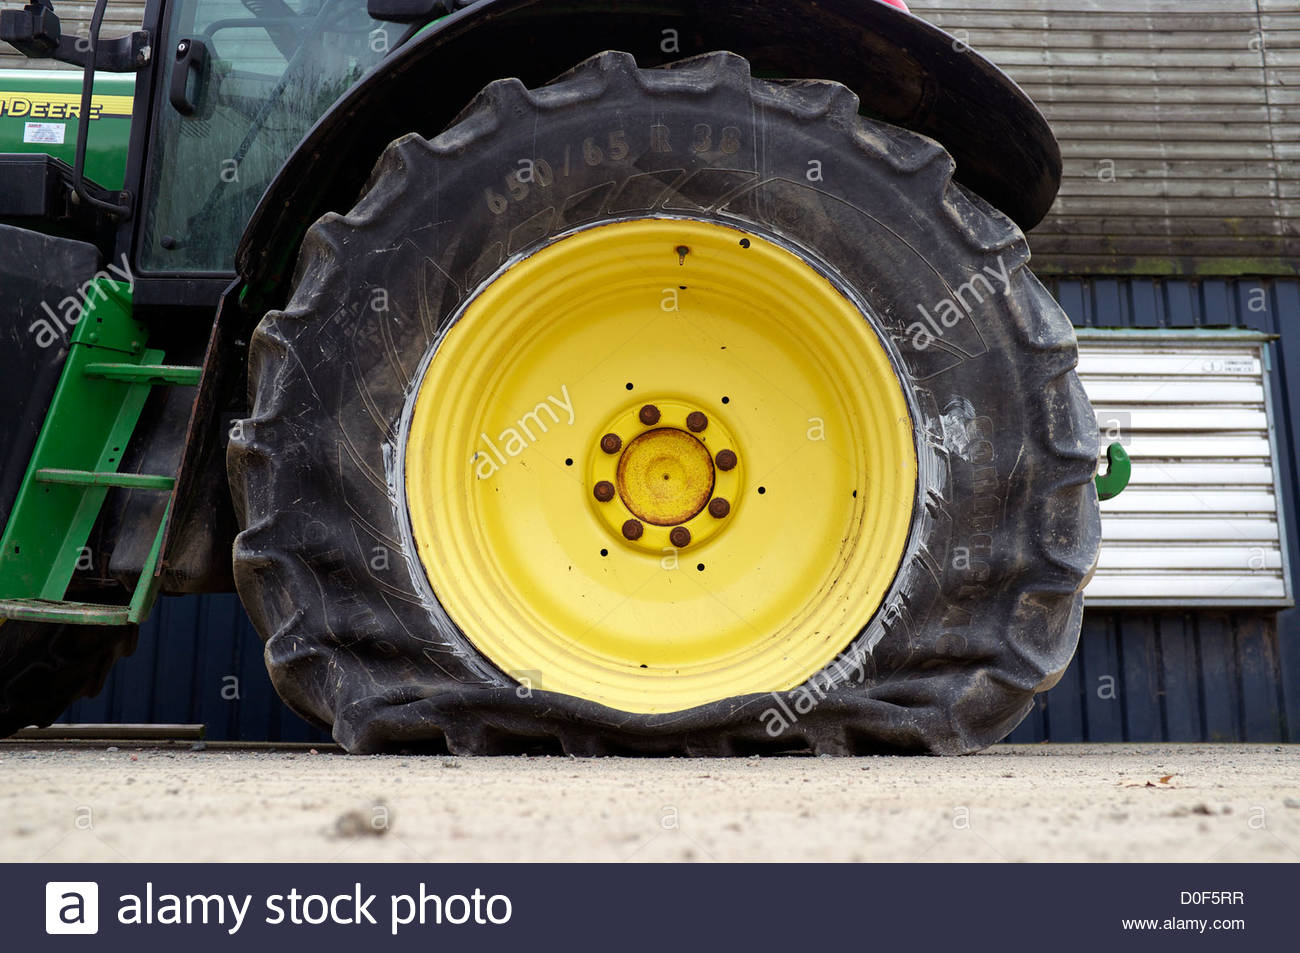 a-flat-tyre-on-an-agricultural-tractor-i